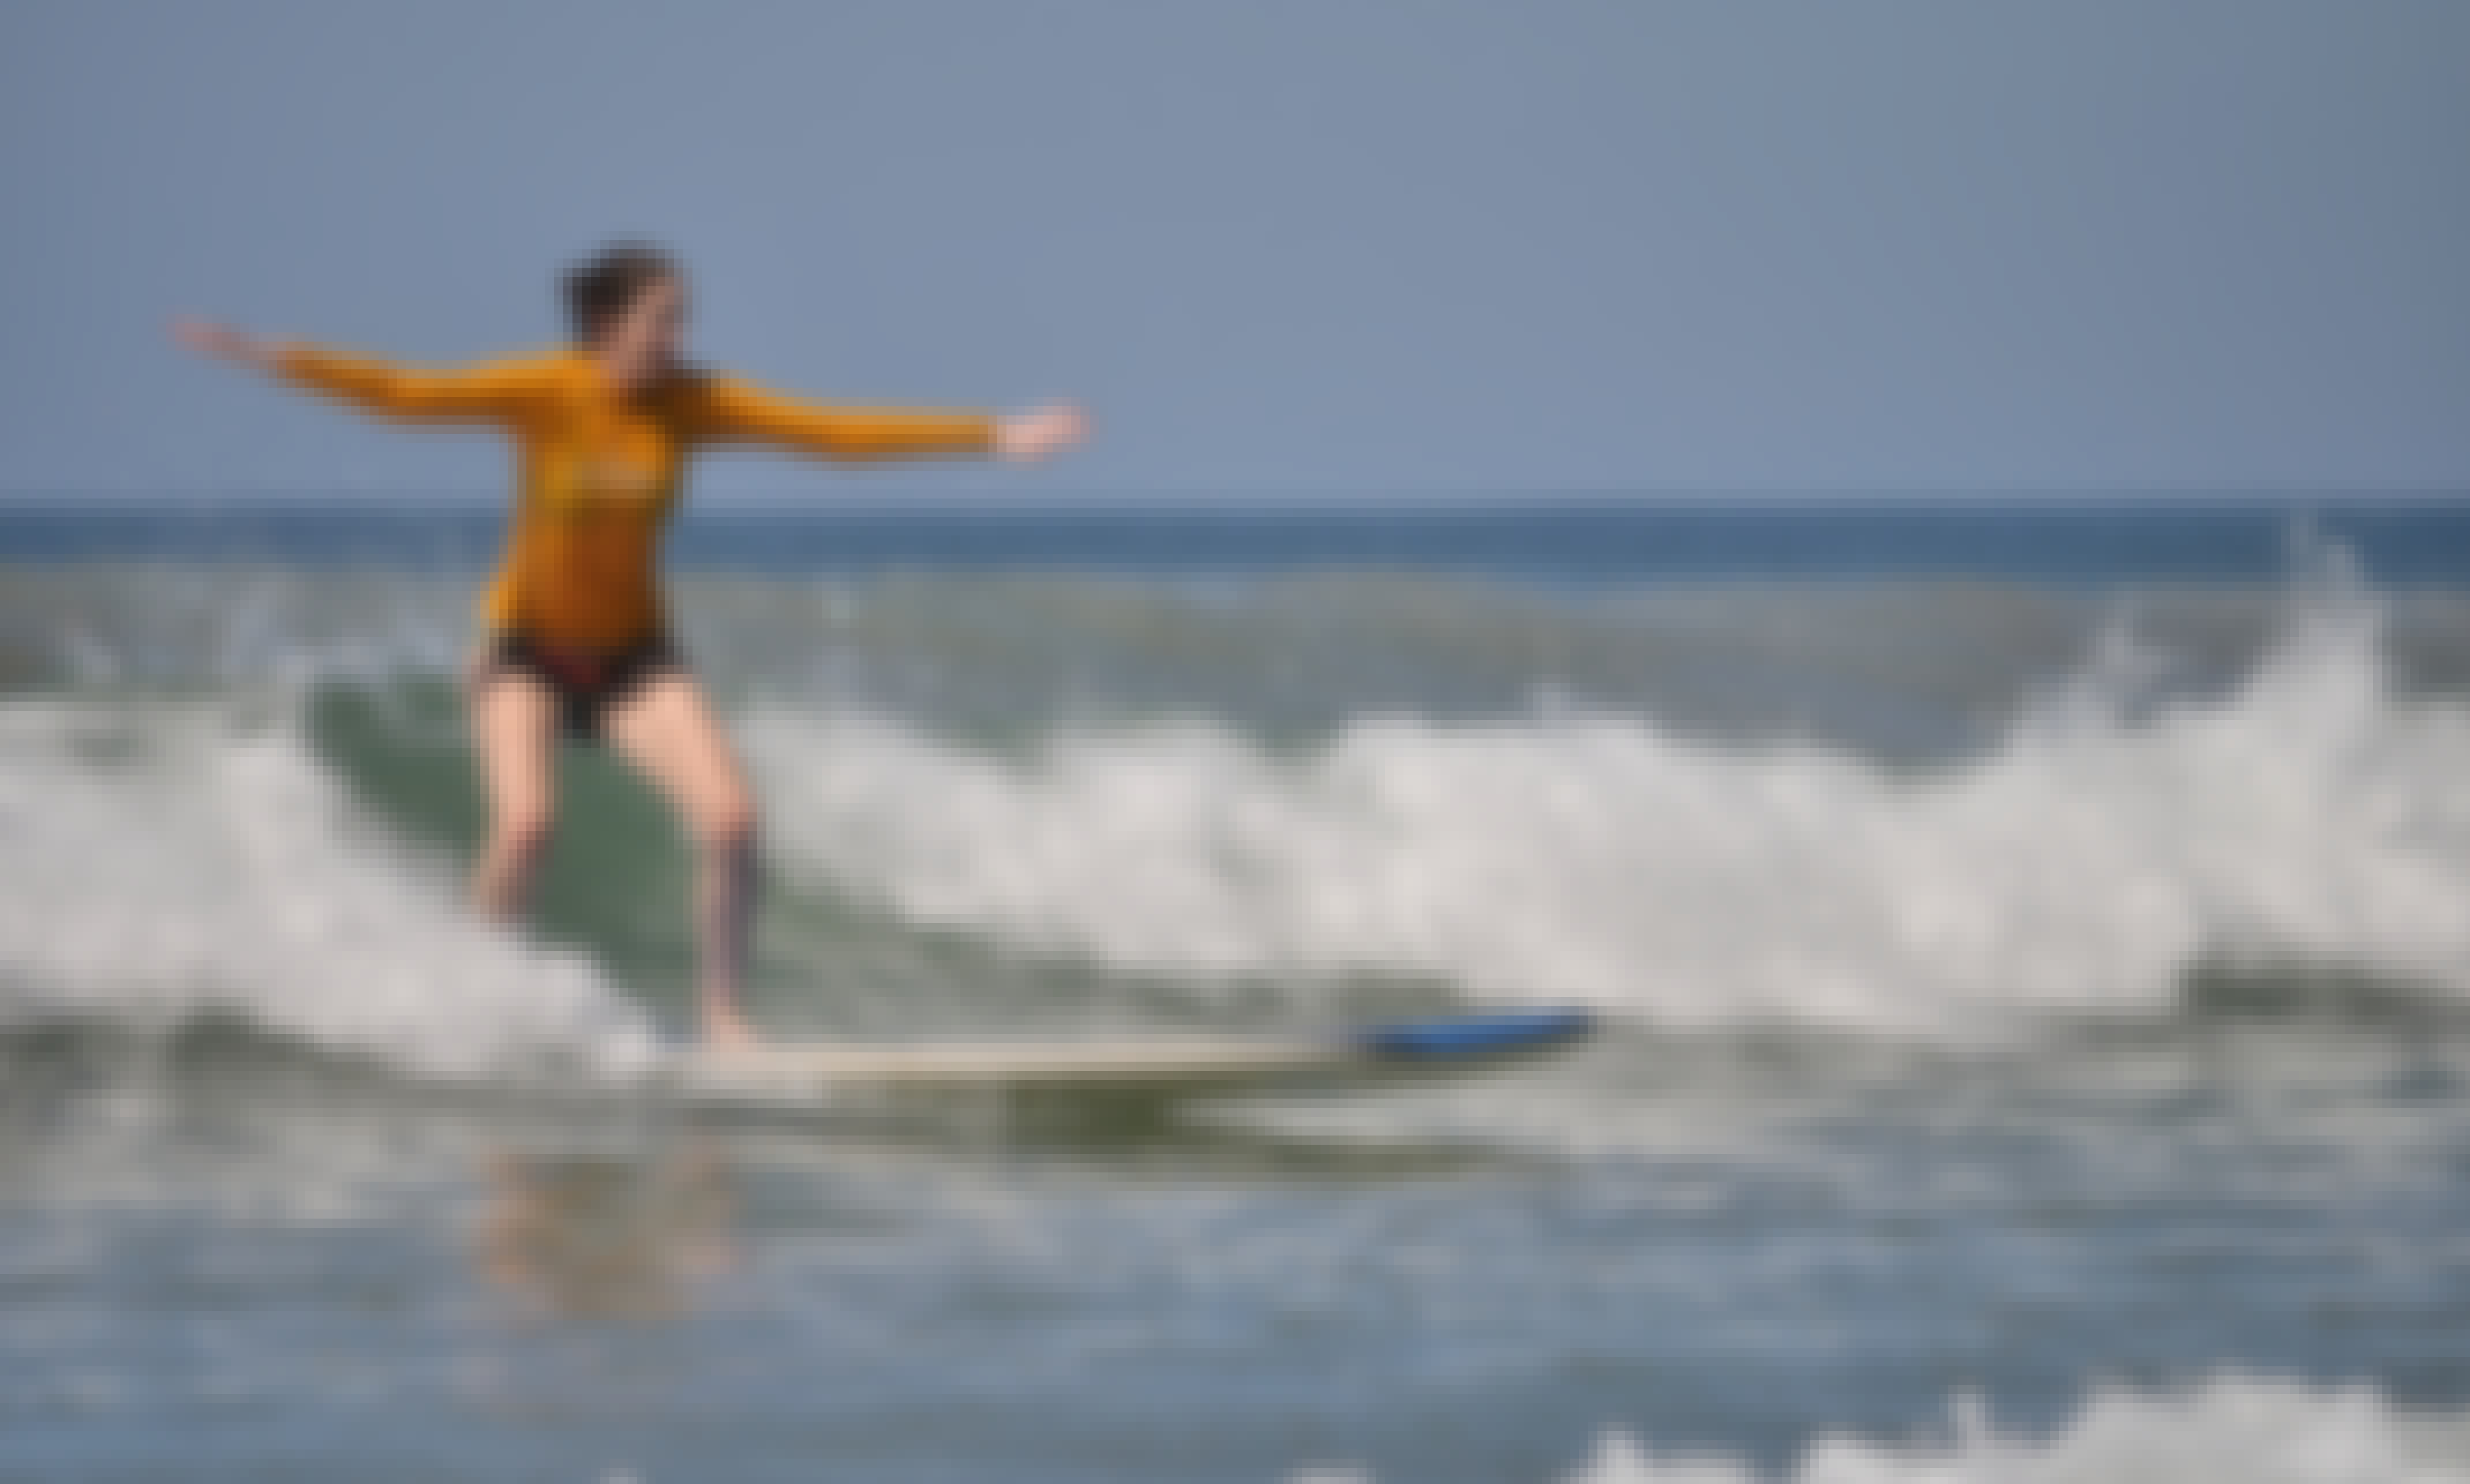 Surf Lessons in Playa Grande, Provincia de Guanacaste - Uncrowded beach. Room to move. Focus on learning, not obstacles!